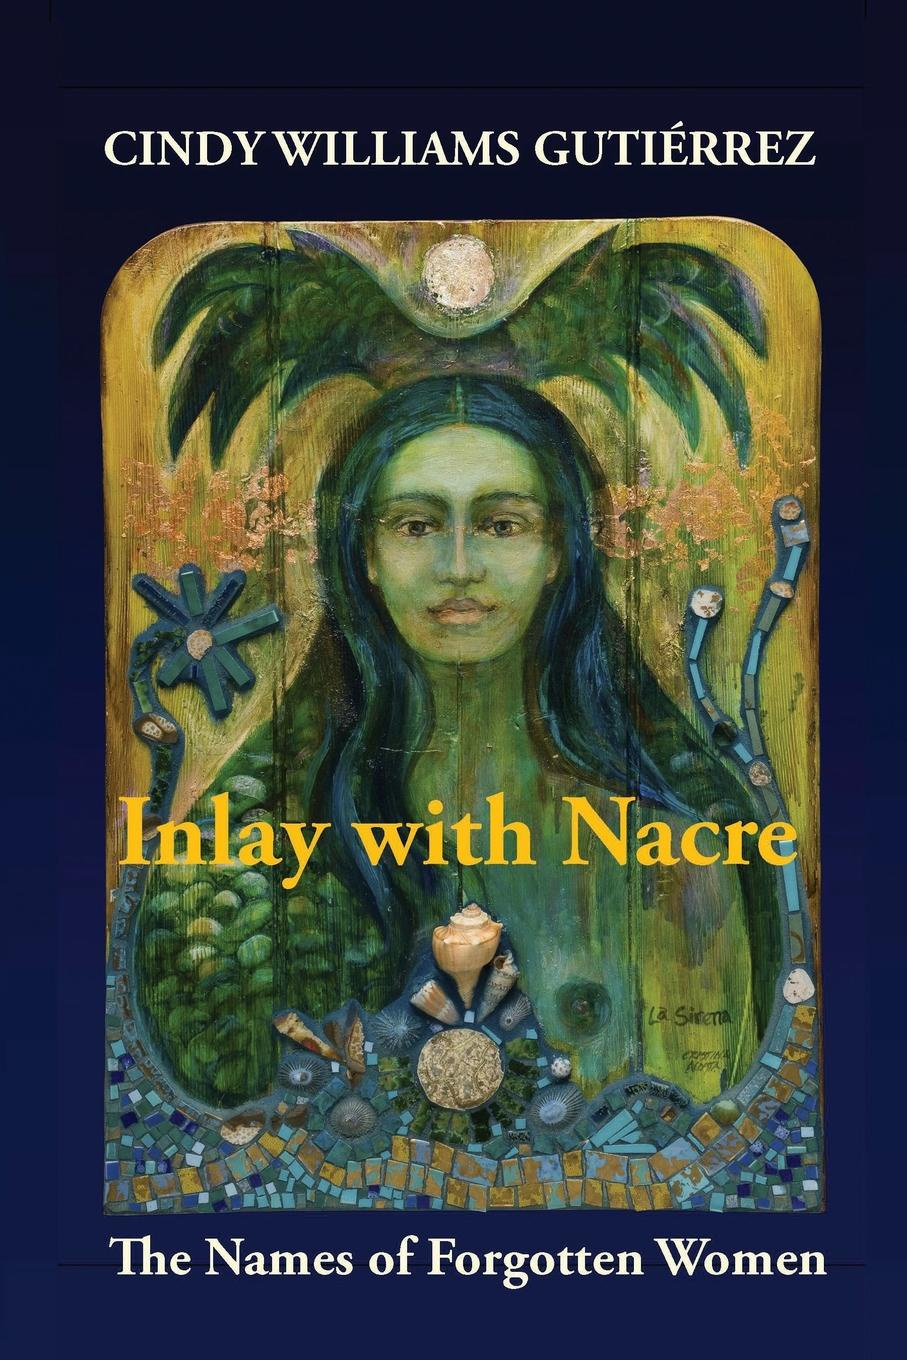 Cindy Williams Gutiérrez Inlay with Nacre. The Names of Forgotten Women on the court with venus and serena williams